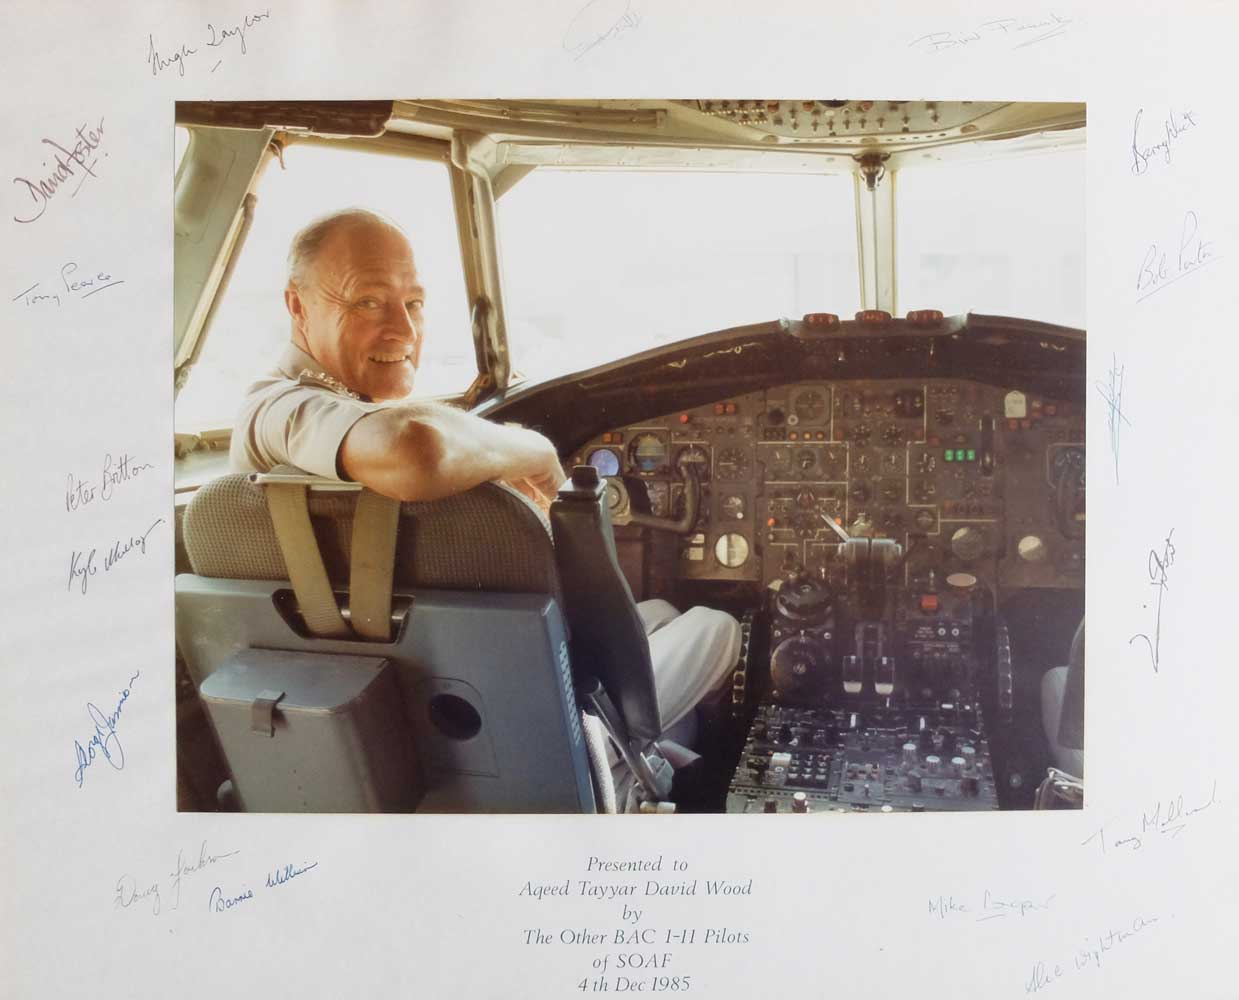 Captain David Wood in the cockpit of BAC 1-11